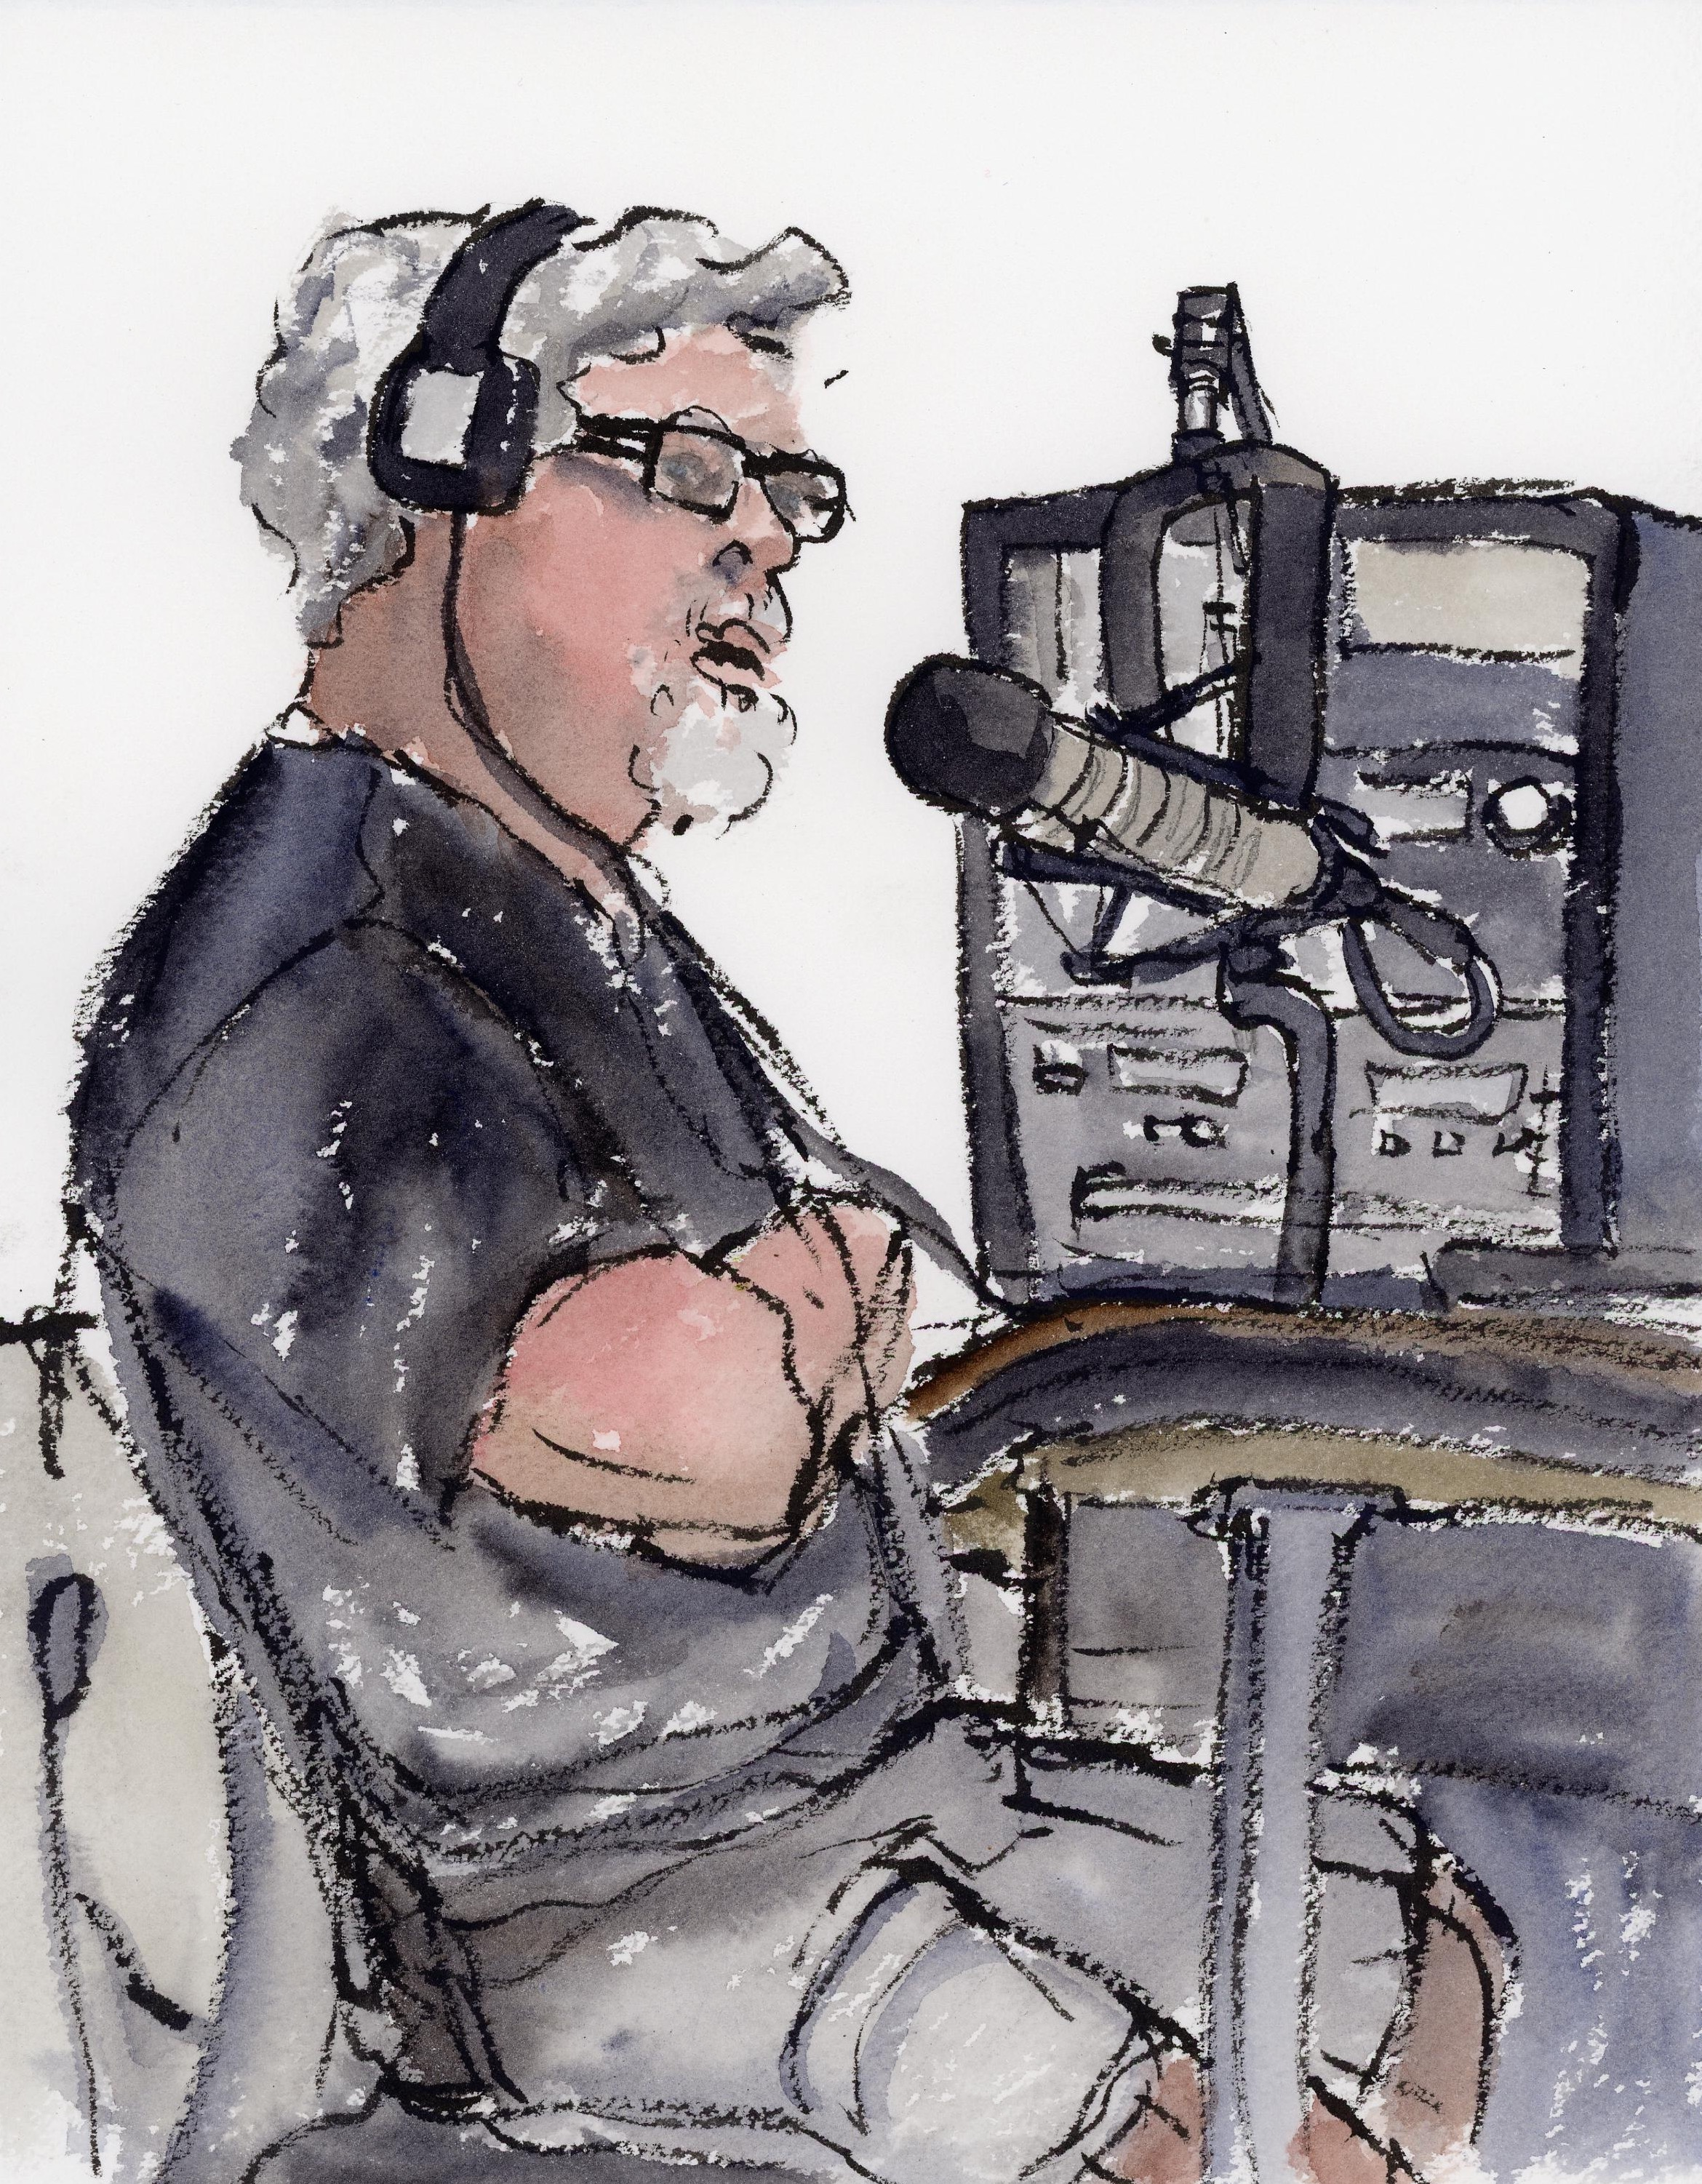 Paul of the Spokane SOS radio program, let me sit in the recording booth with him while he interviewed a groups of former Peace Corps volunteers about their experiences with the Peace Corps. There were four of them plus Paul and an extra gentleman helping with the recording machinery plus me so it was a little tight! I did this painting while sitting on the ground looking up at Paul and I am super pleased with how it came out, except for one thing. Hey Paul, I know this is radio not tv, but how about wearing some color? Haha!